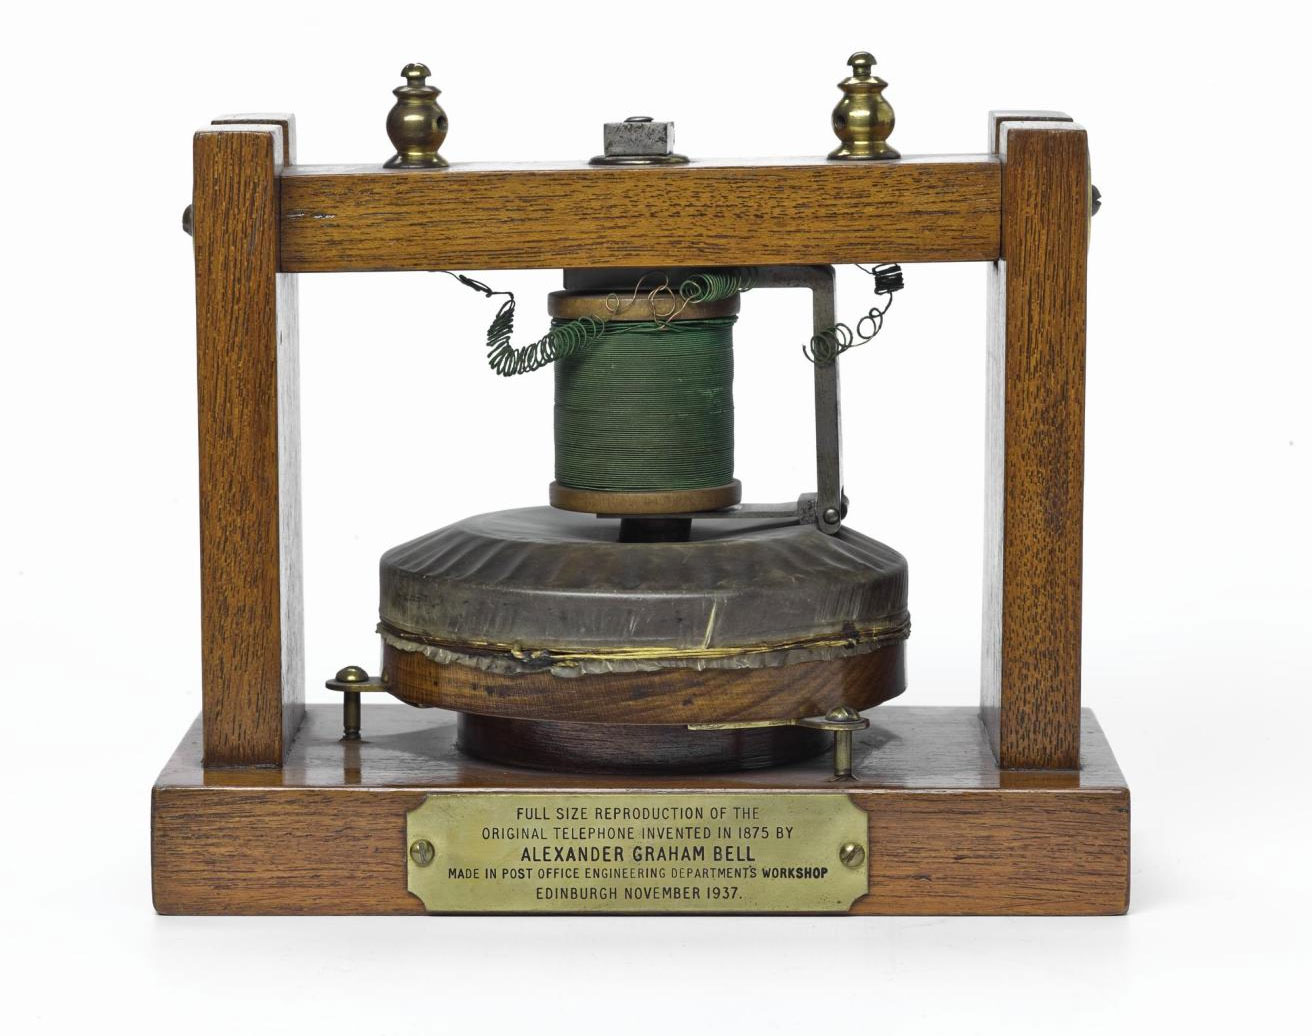 Bell's 'gallows frame' telephone.